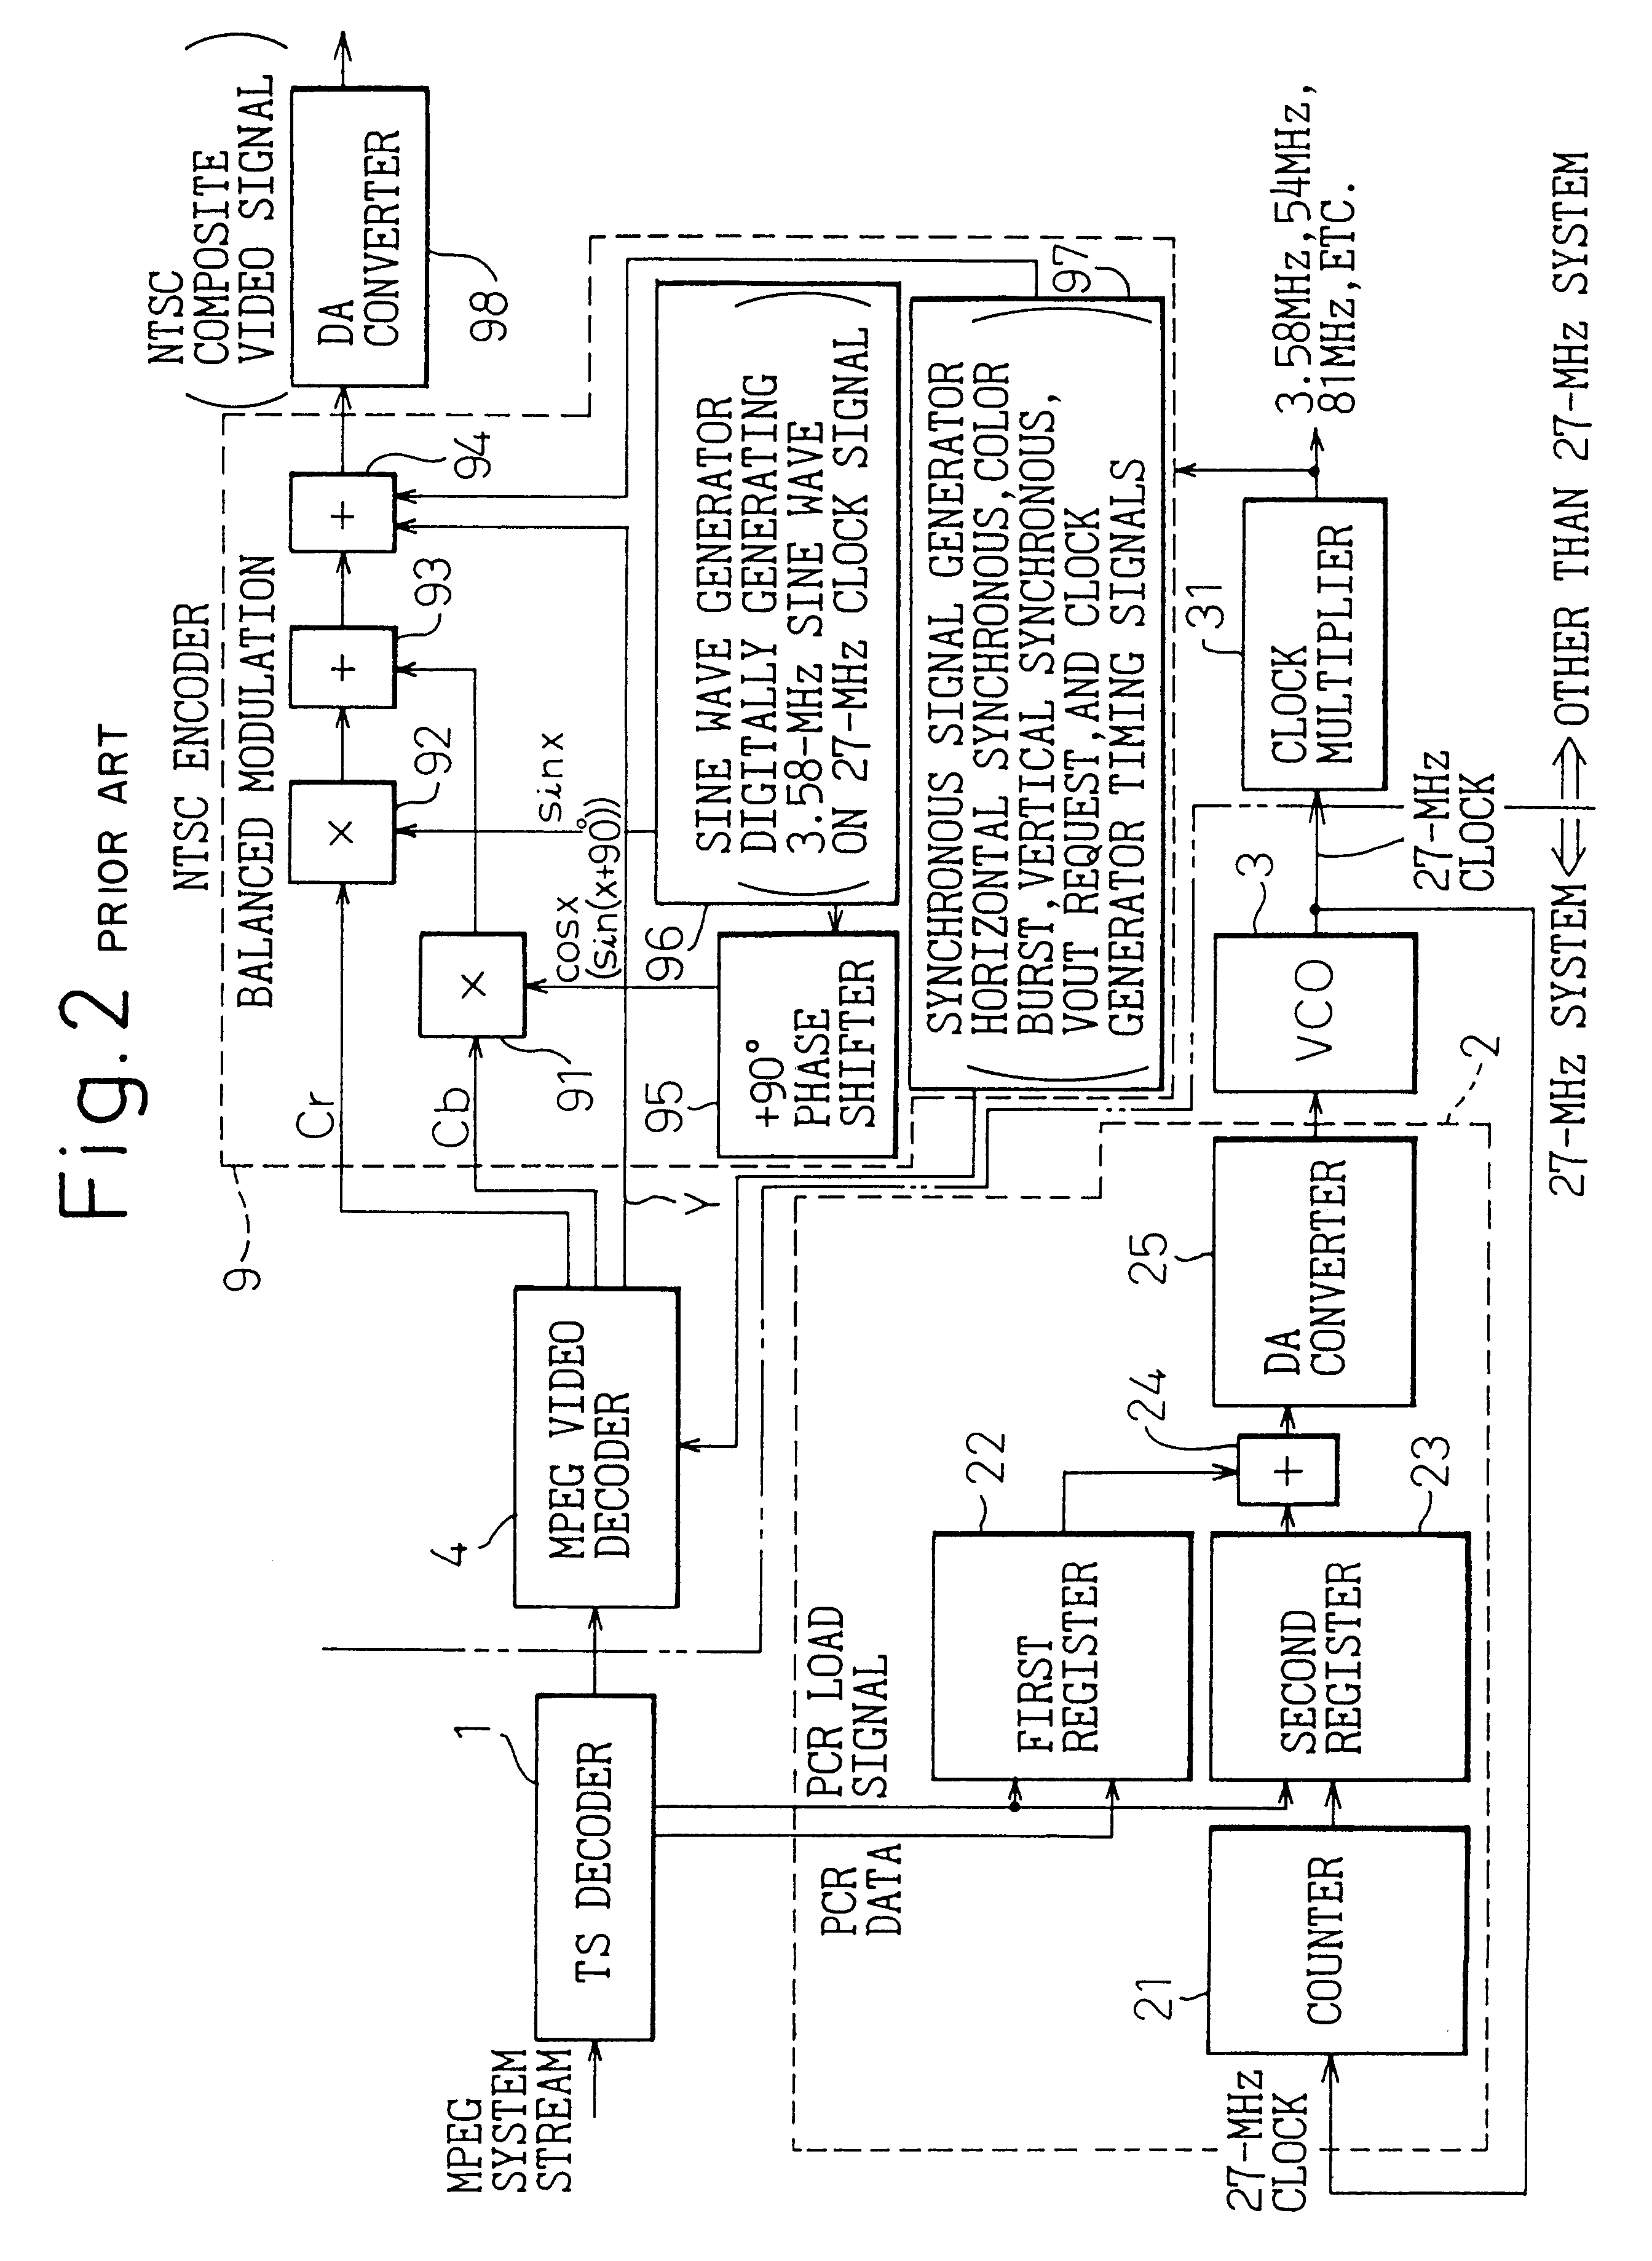 Patent Us6175385 Digital Pll Circuit For Mped Stream And Mpeg 2 Block Diagram Drawing